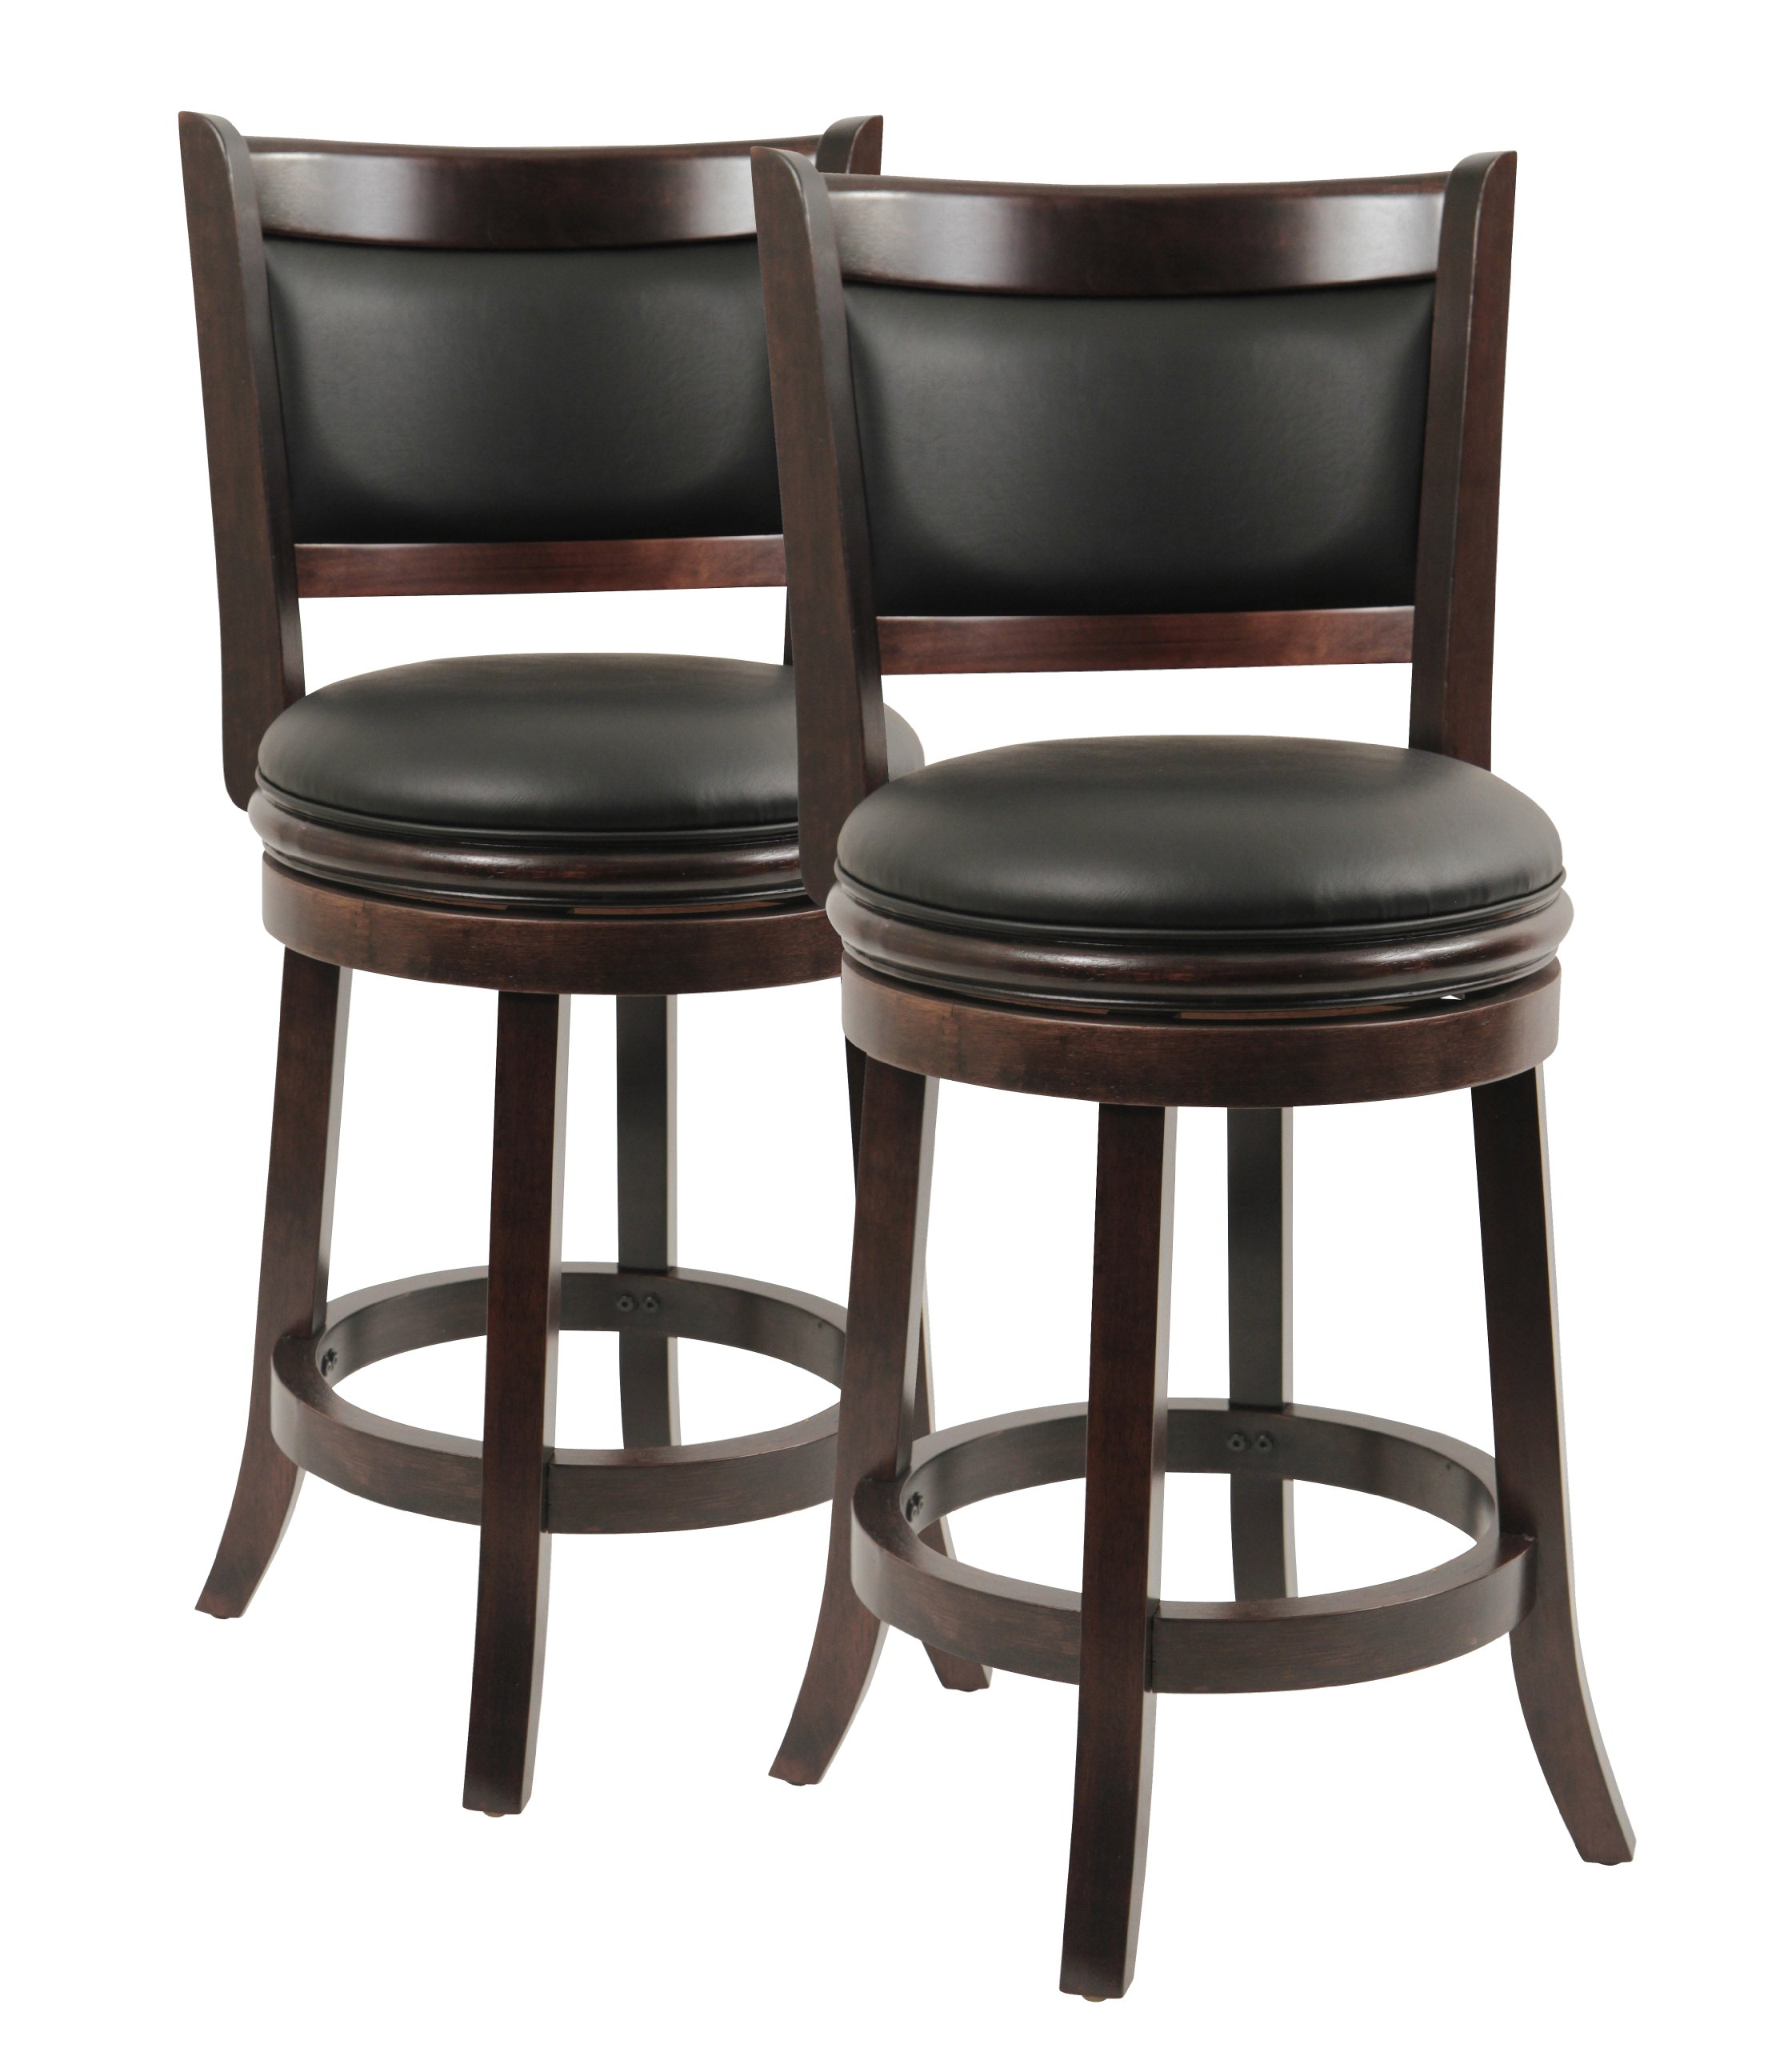 Boraam 8824 Augusta Counter Height Swivel Stool, 24-Inch, Cappuccino, 2-Pack